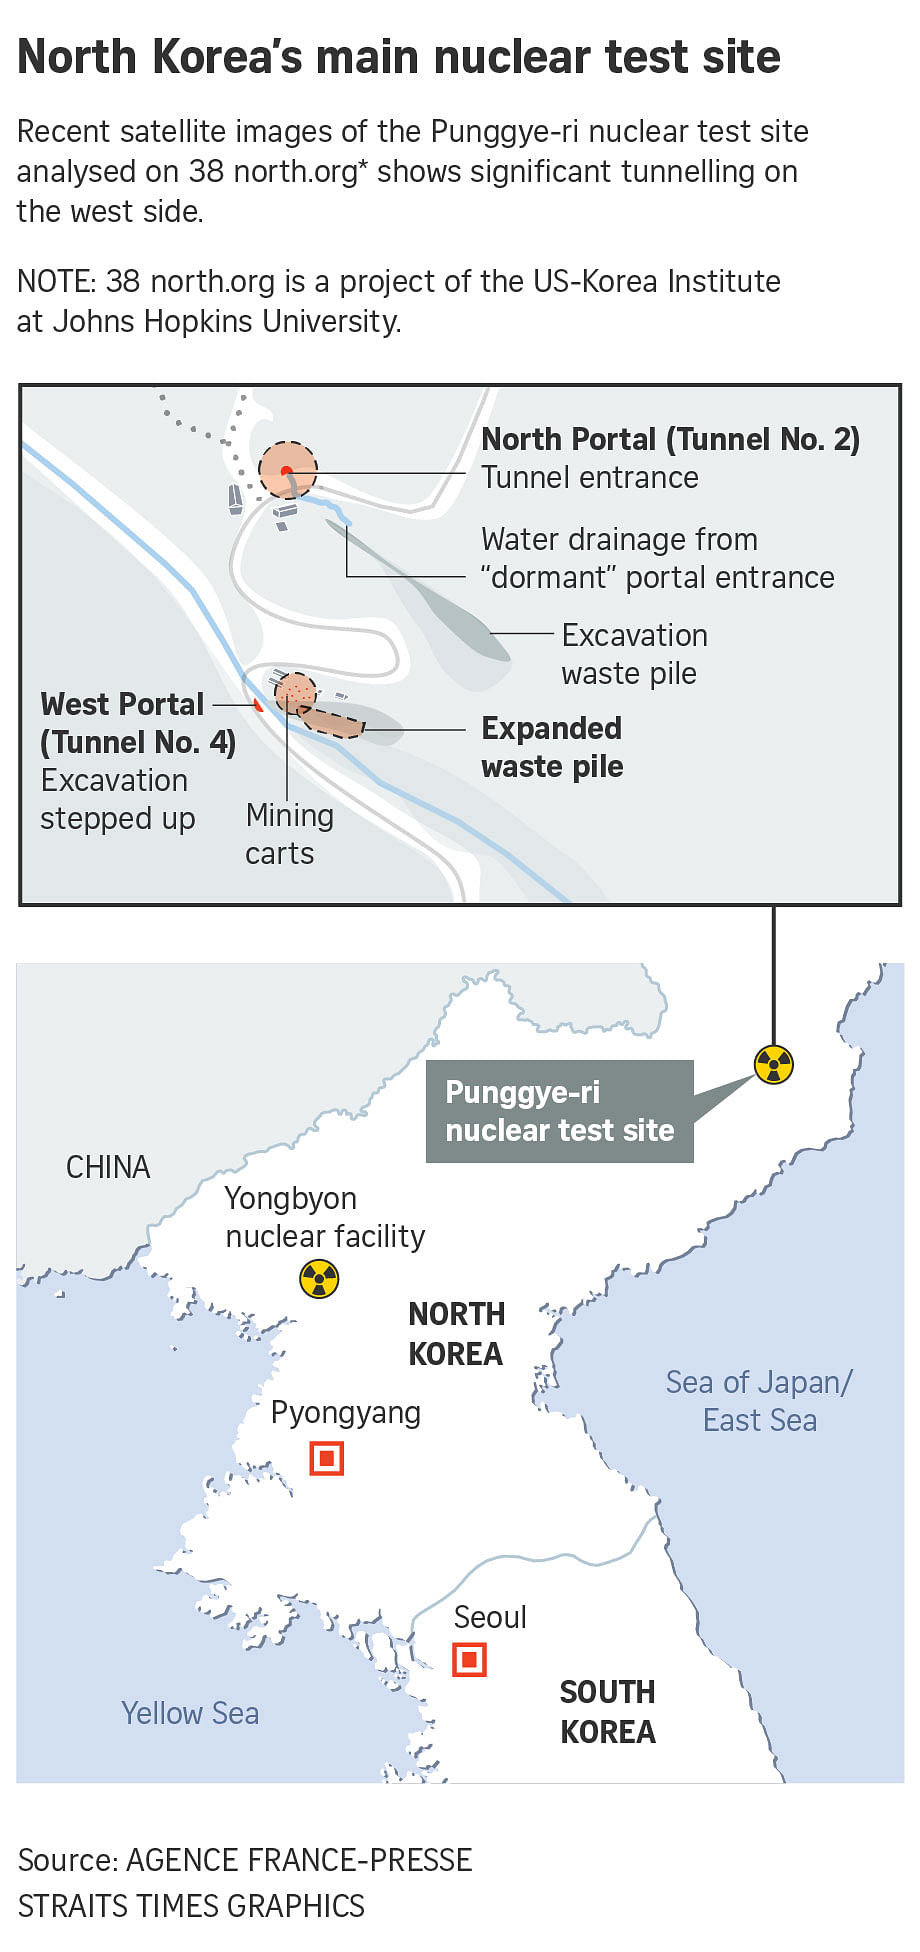 Satellite imagery shows tunnelling at North Korea nuclear